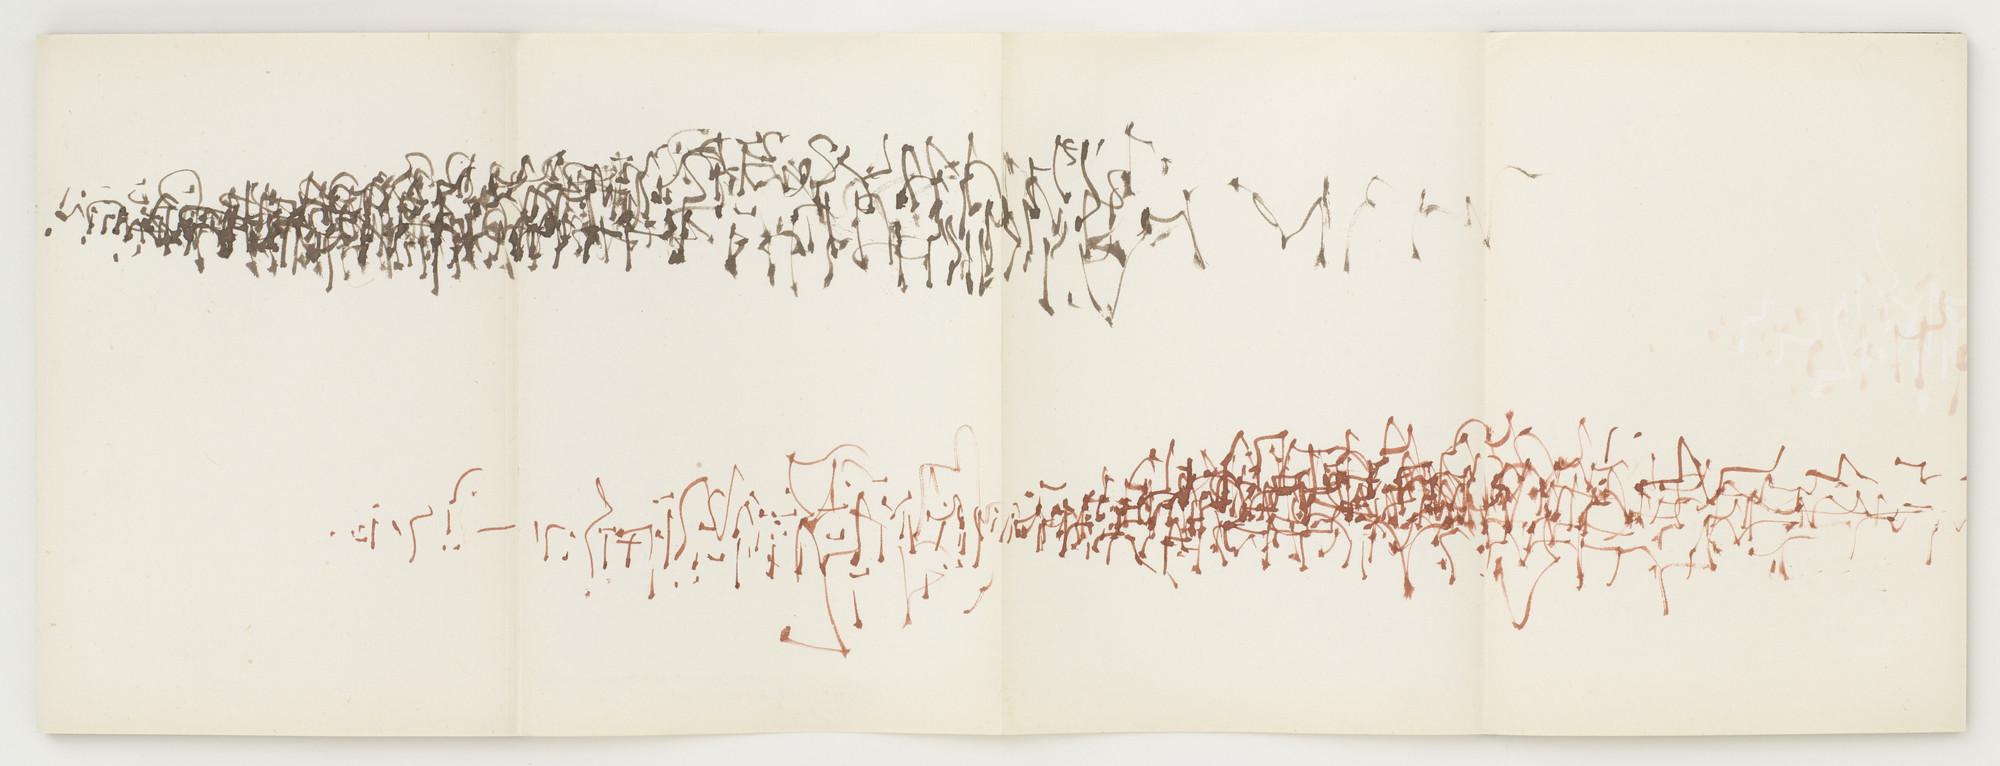 Brion Gysin. A Trip from Here to There. 1958